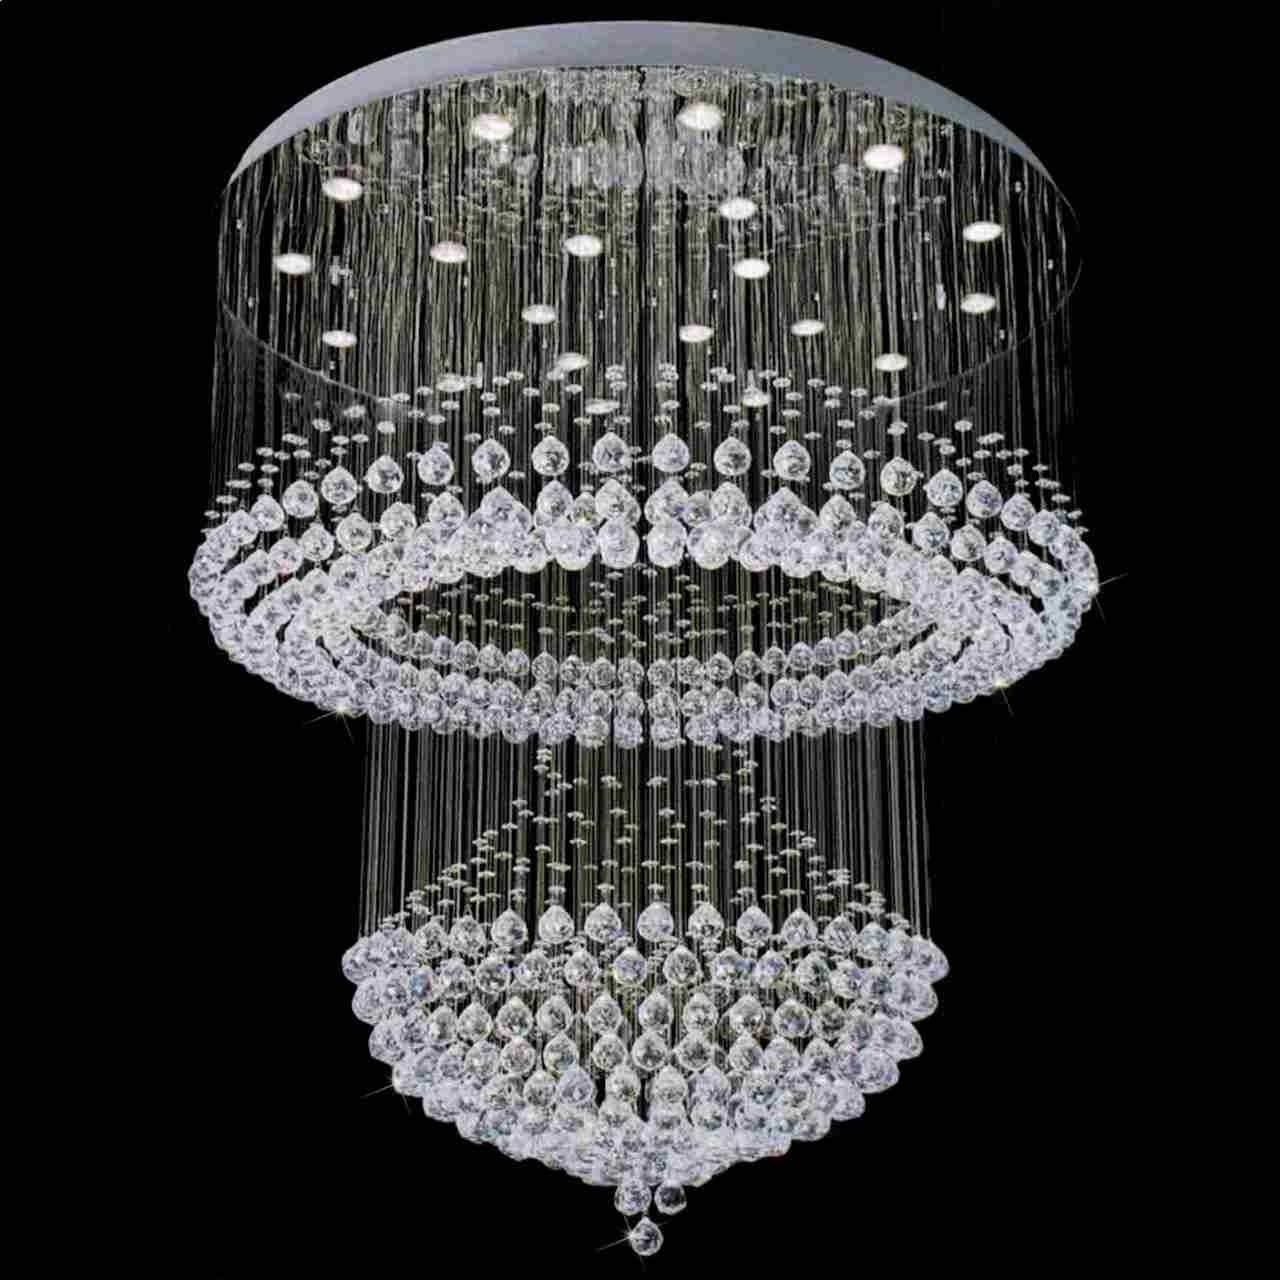 Small Crystal Chandelier Table Lamps Within Newest Small Crystal Chandelier (View 13 of 15)